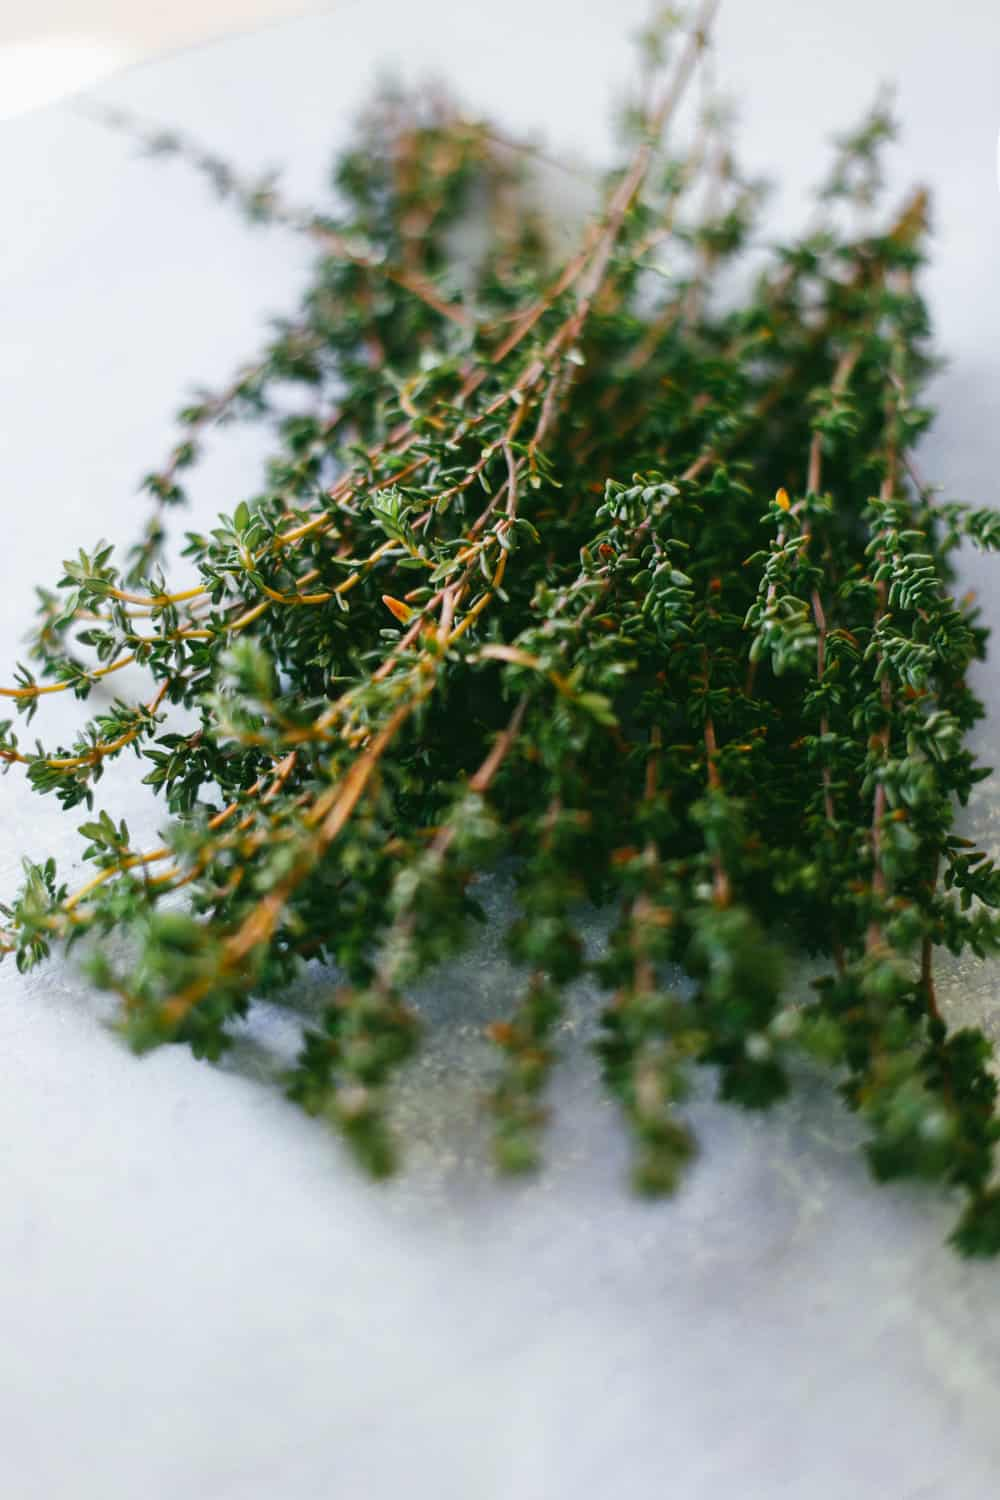 A small bunch of thyme sprigs.